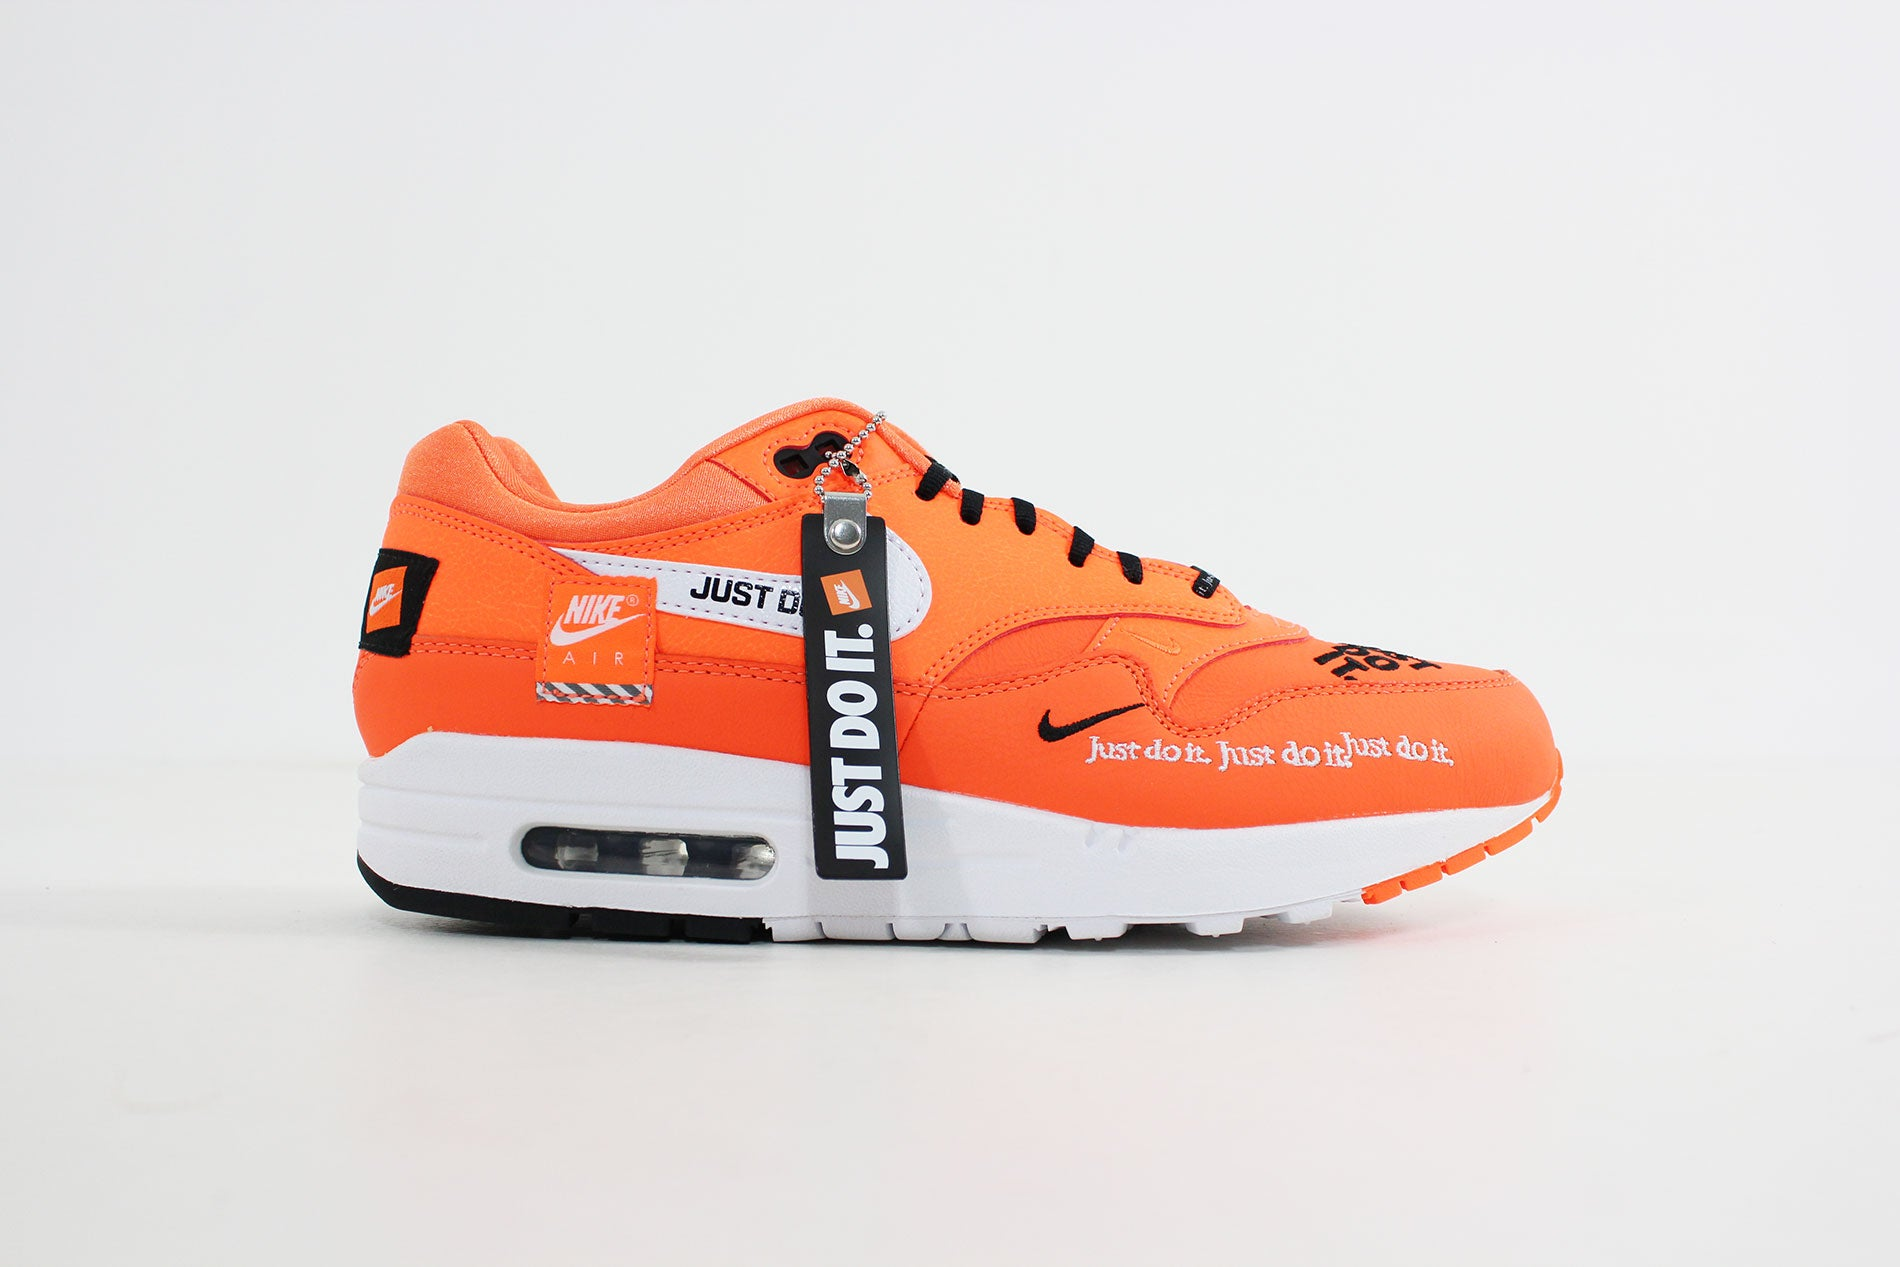 new product 1aba7 f5c67 Nike - Air Max 1 Lux Women (Total Orange/ White Black) 917691-